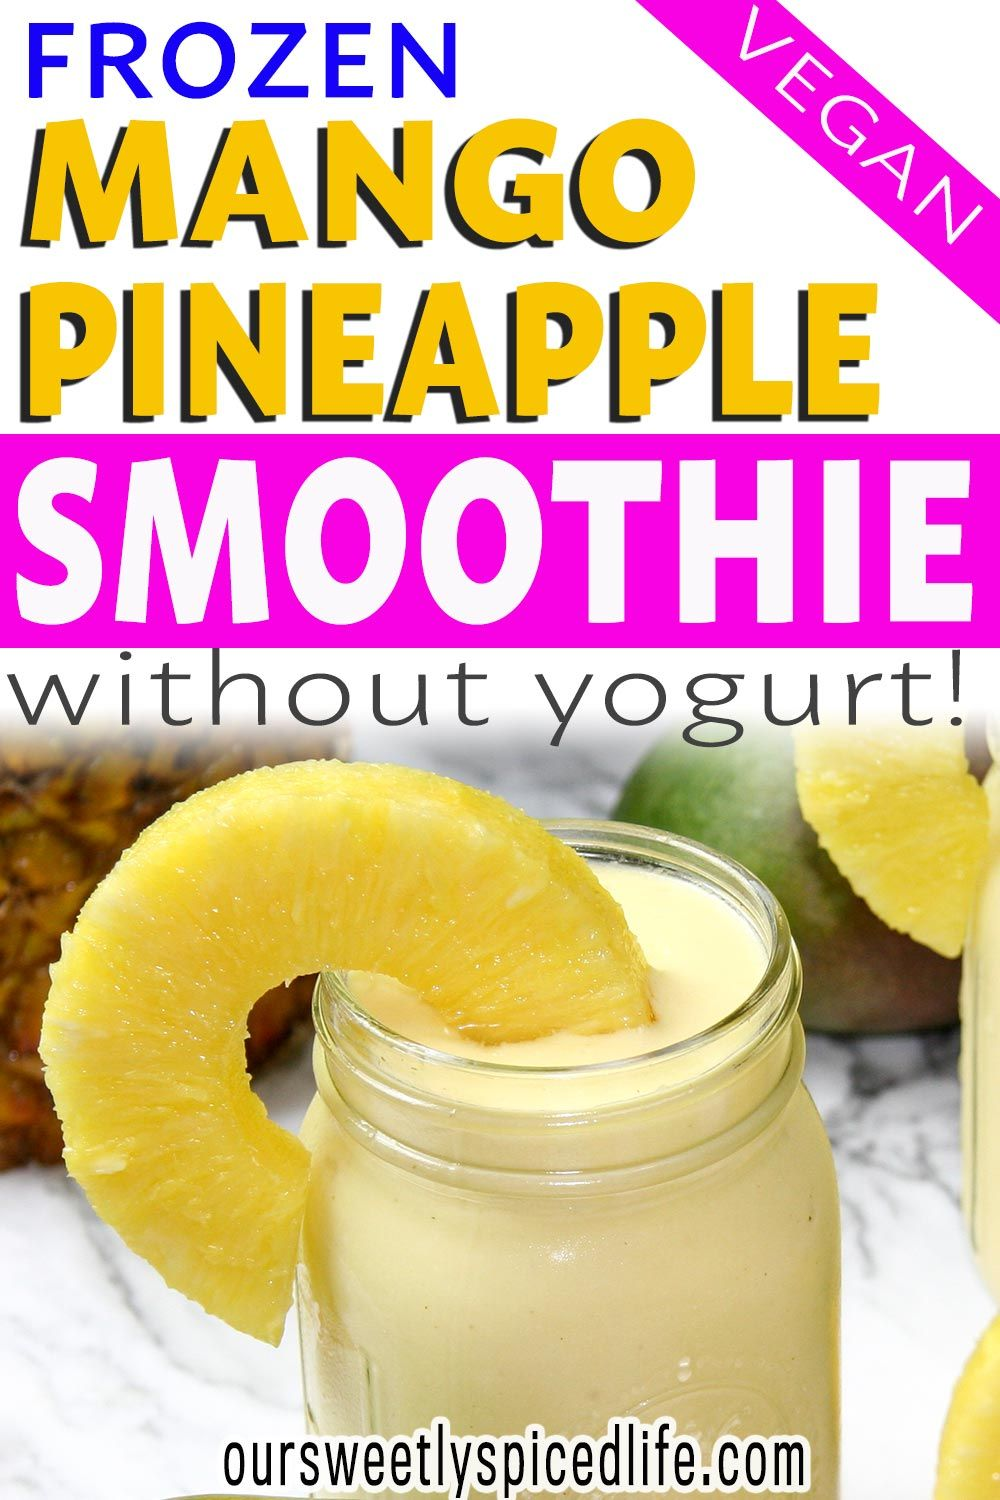 Tropical Mango Pina Colada Smoothie Our Sweetly Spiced Life Recipe In 2020 Mango Pineapple Smoothie Smoothie Without Yogurt Smoothie Without Banana